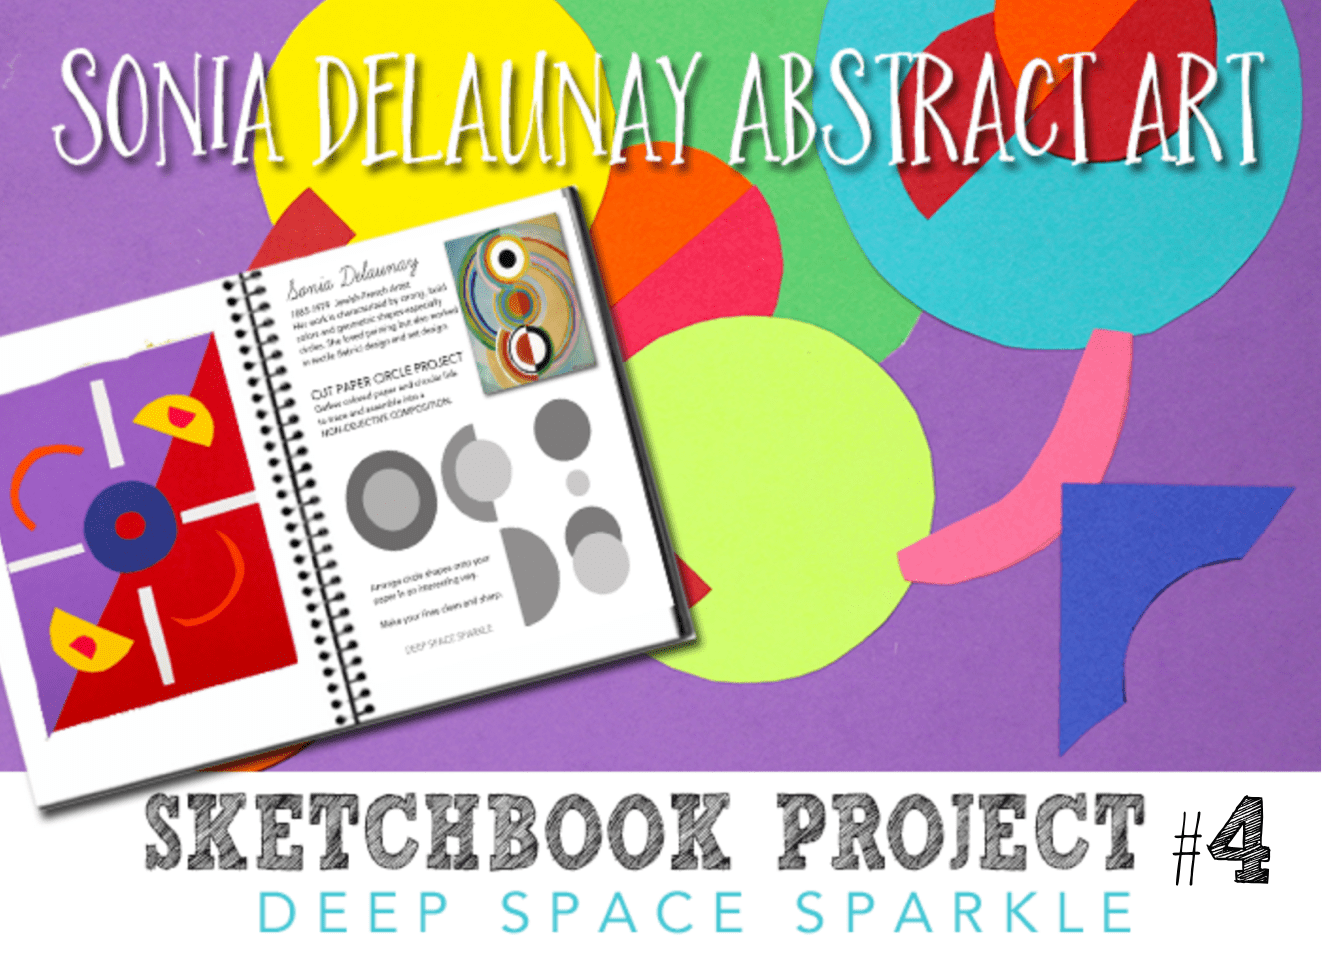 Sketchbook Project 4 Abstract Art Free Project Guide